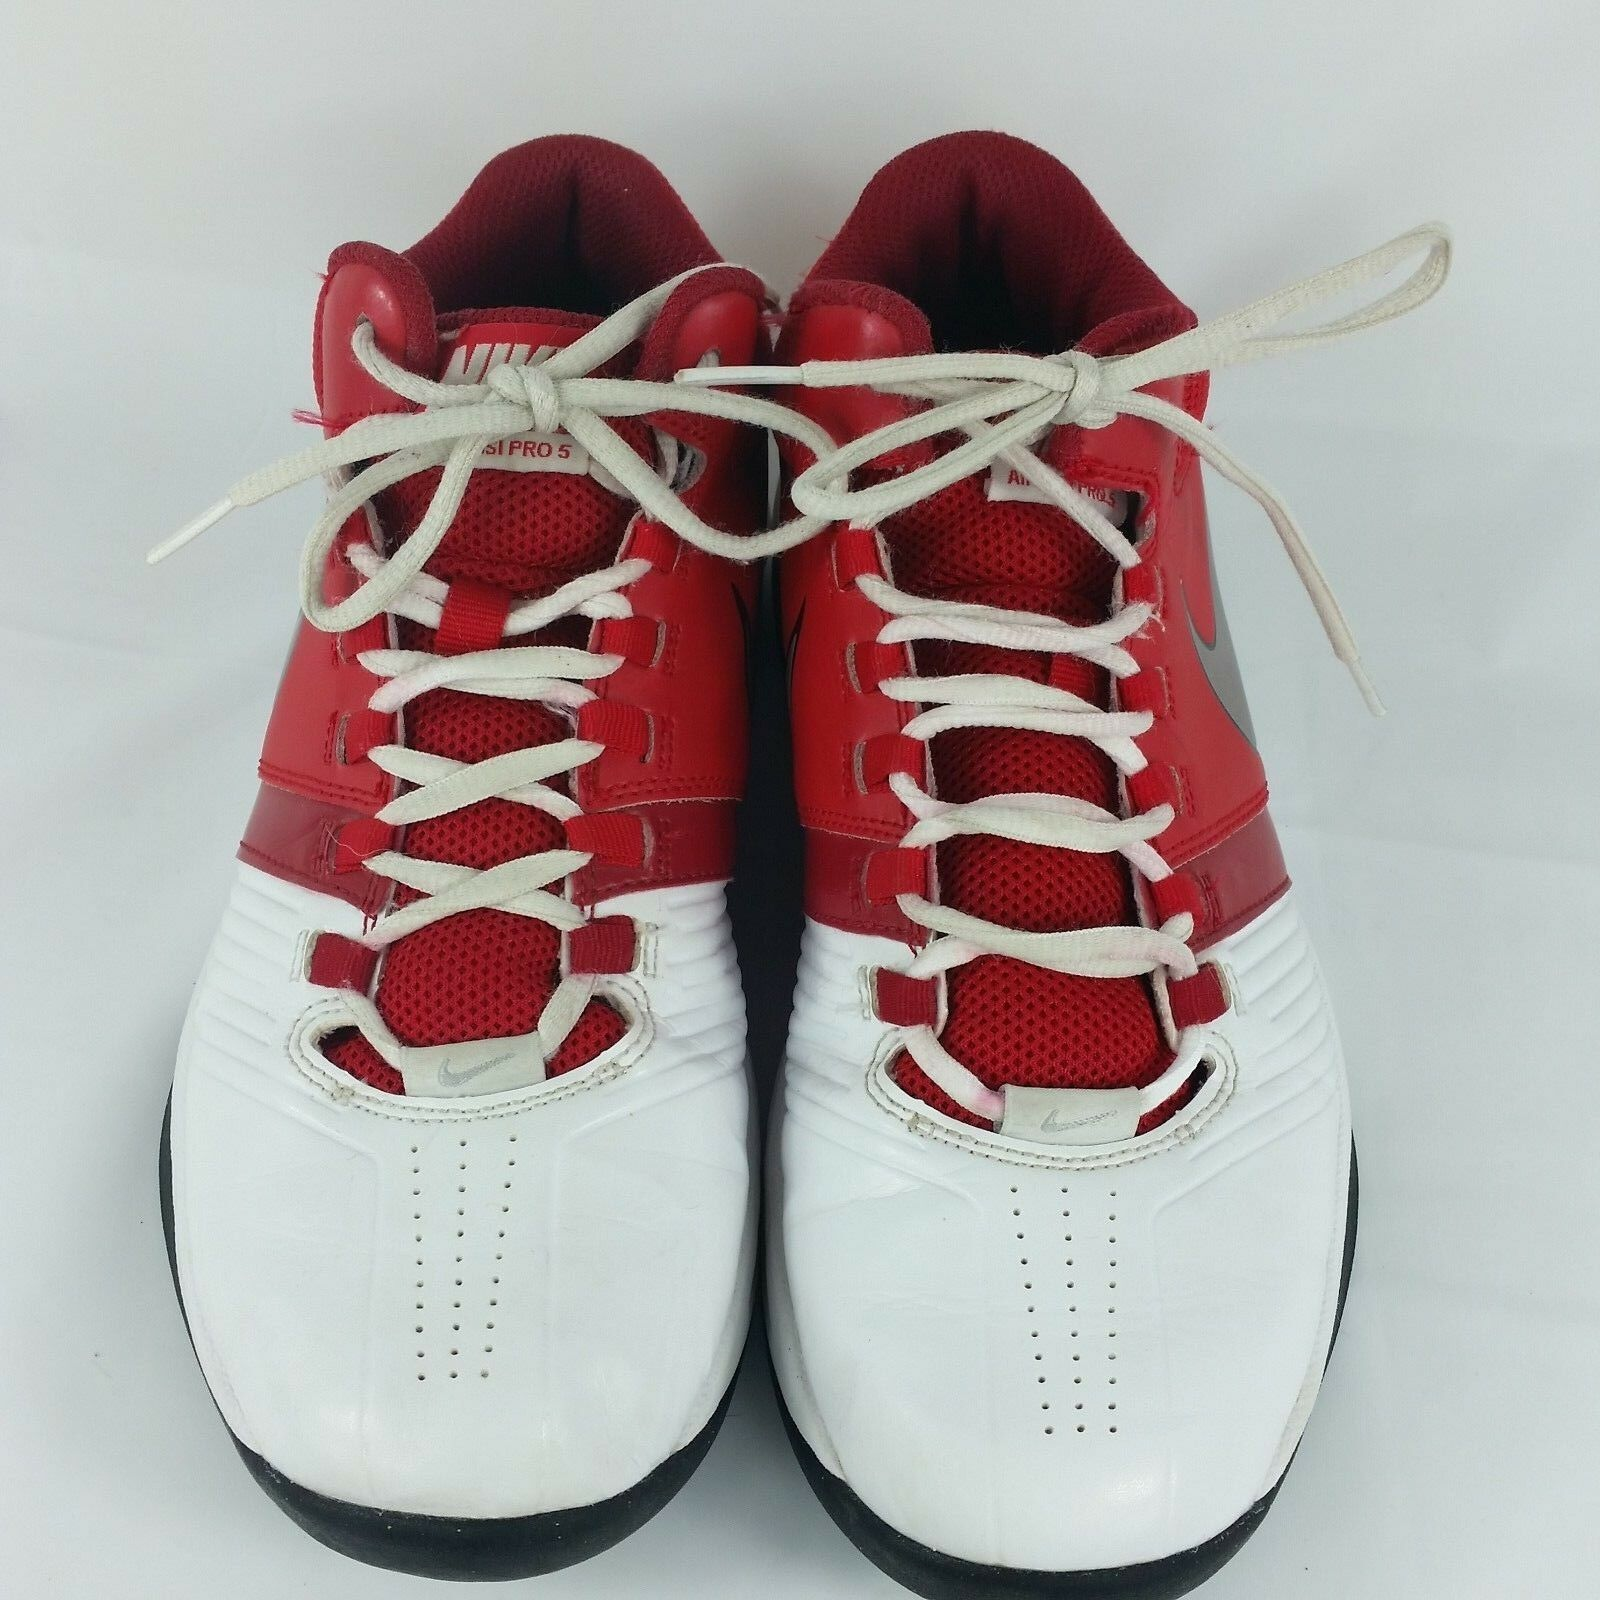 super popular 5cd13 1fc0c preowned Nike Air visi Pro 5 womens and 50 similar items